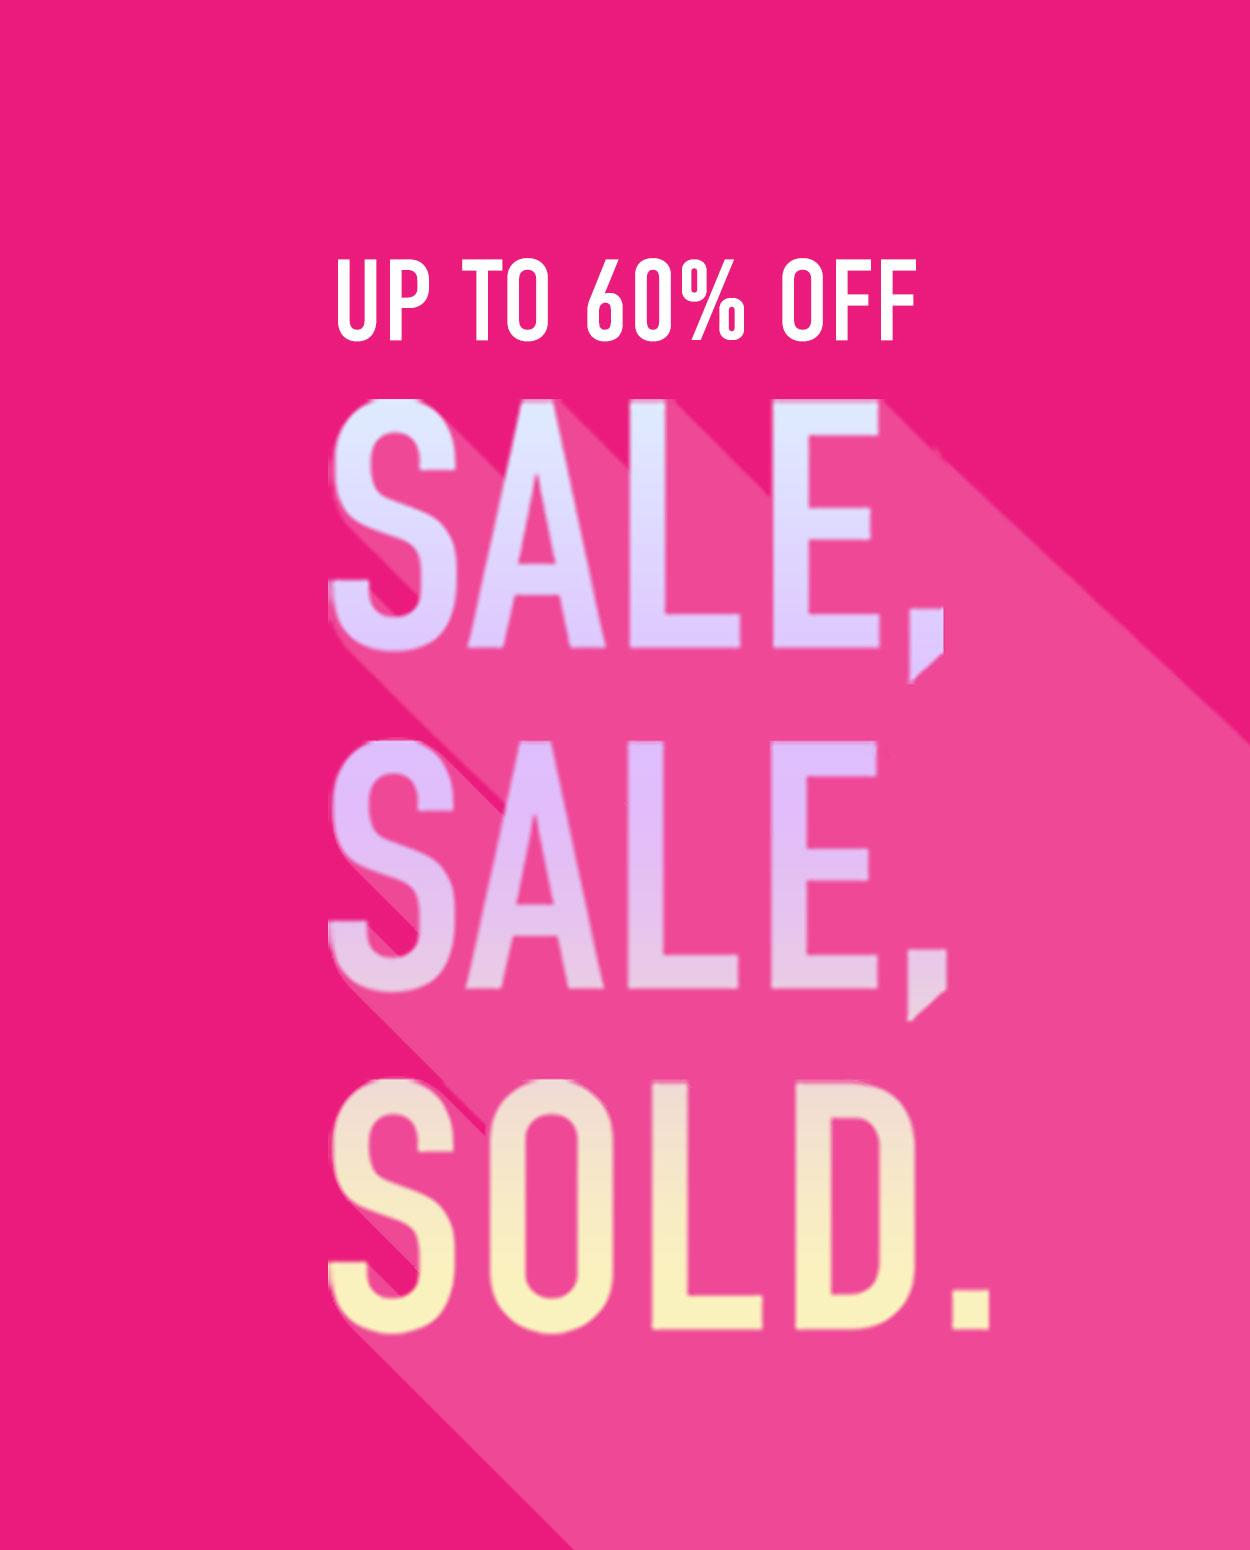 Office Shoes: Sale up to 60% off women's, men's and kids' shoes